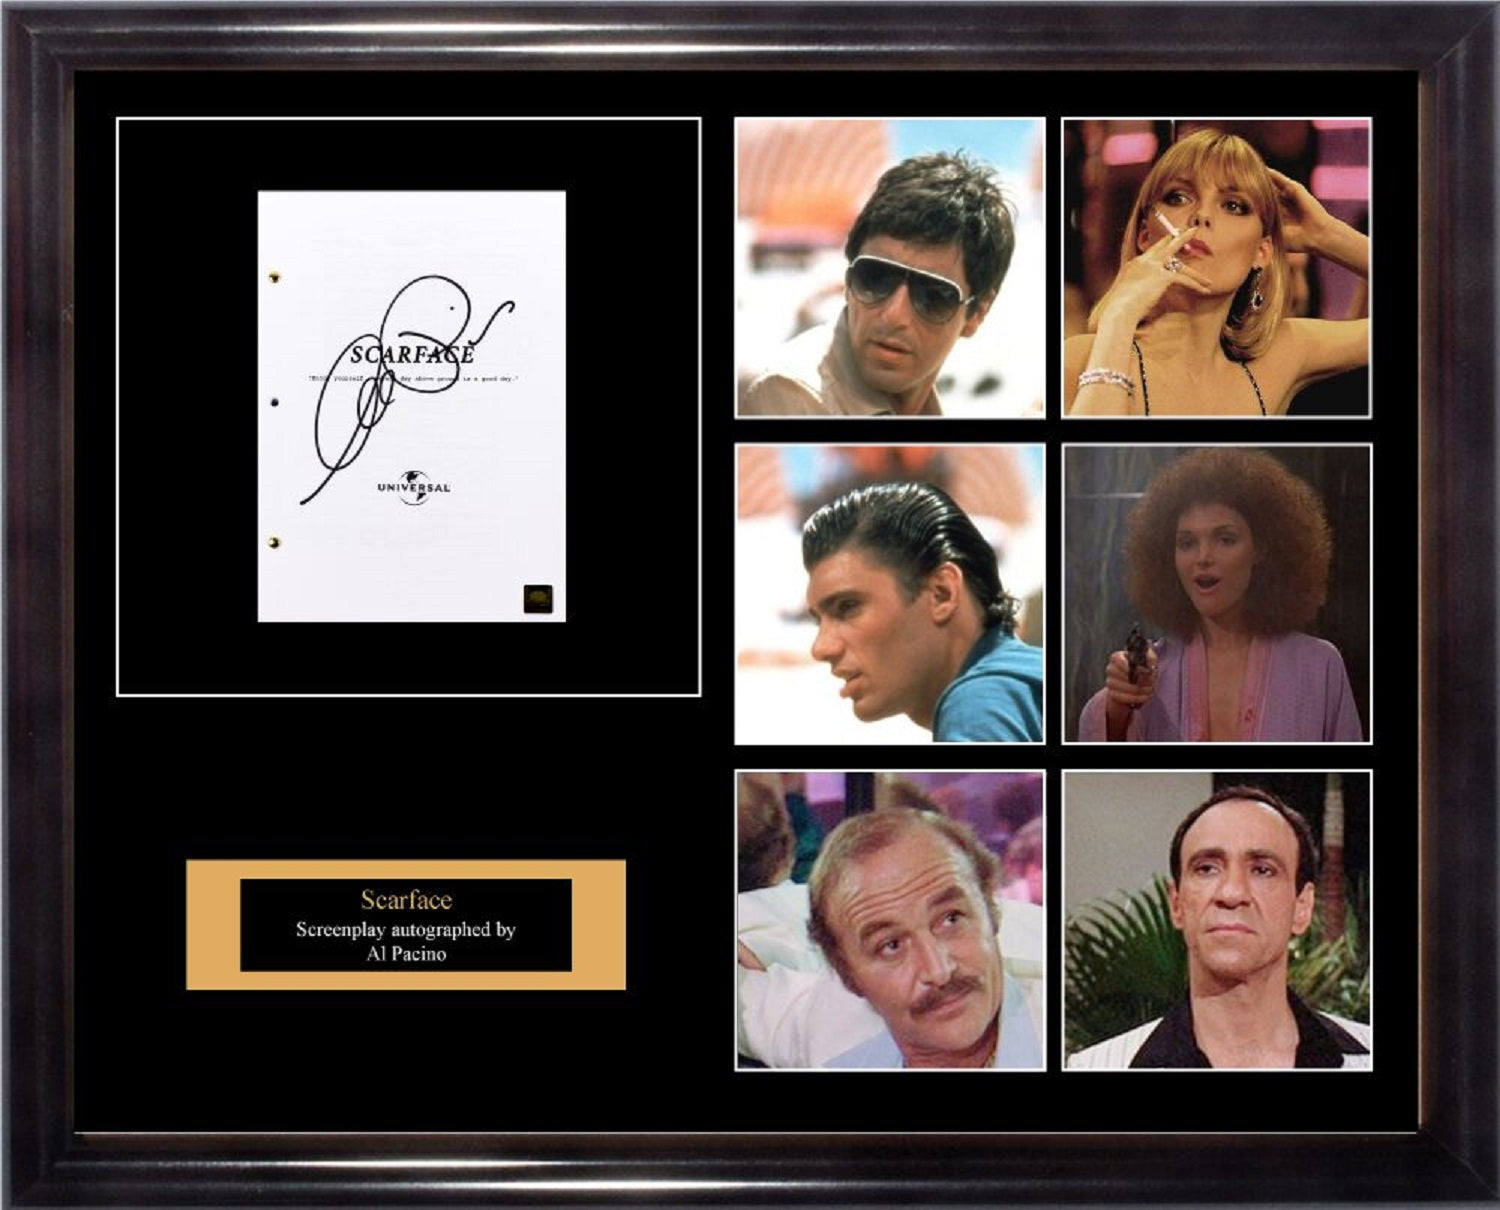 Scarface Signed Movie Script In Photo Collage Frame Front Row